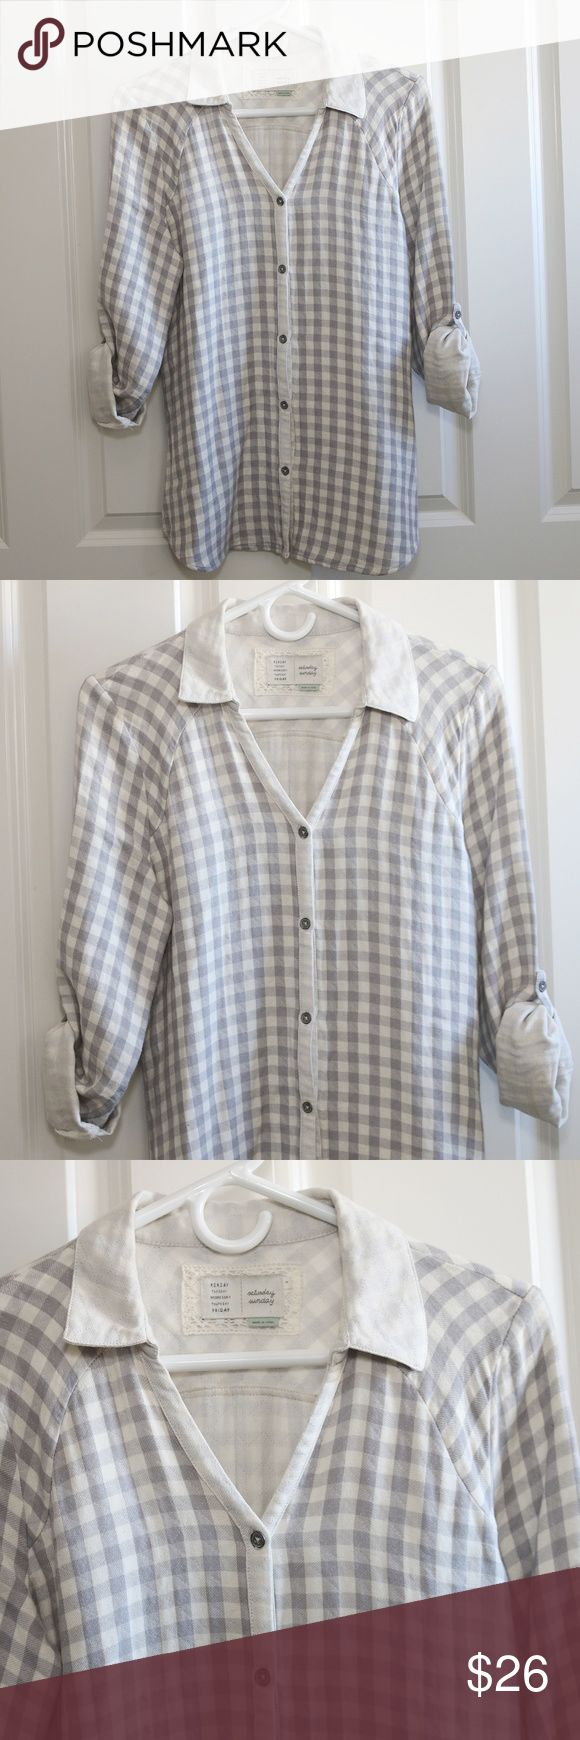 Anthropologie Saturday Sunday Plaid Flannel Shirt Anthropologie Saturday Sunday quilted flannel type shirt.  Button up.  Gray and cream plaid.  Sleeves roll up / can be worn up or down.  Not a super thick shirt.  Very soft.  Size Small.  About 19 inches from armpit to armpit.  About 27 inches from shoulder to hem.  Worn once.  A few small pricks in the fabric, a small snag shown in the pictures (on the back, bottom hem).  No stains. Anthropologie Tops Button Down Shirts